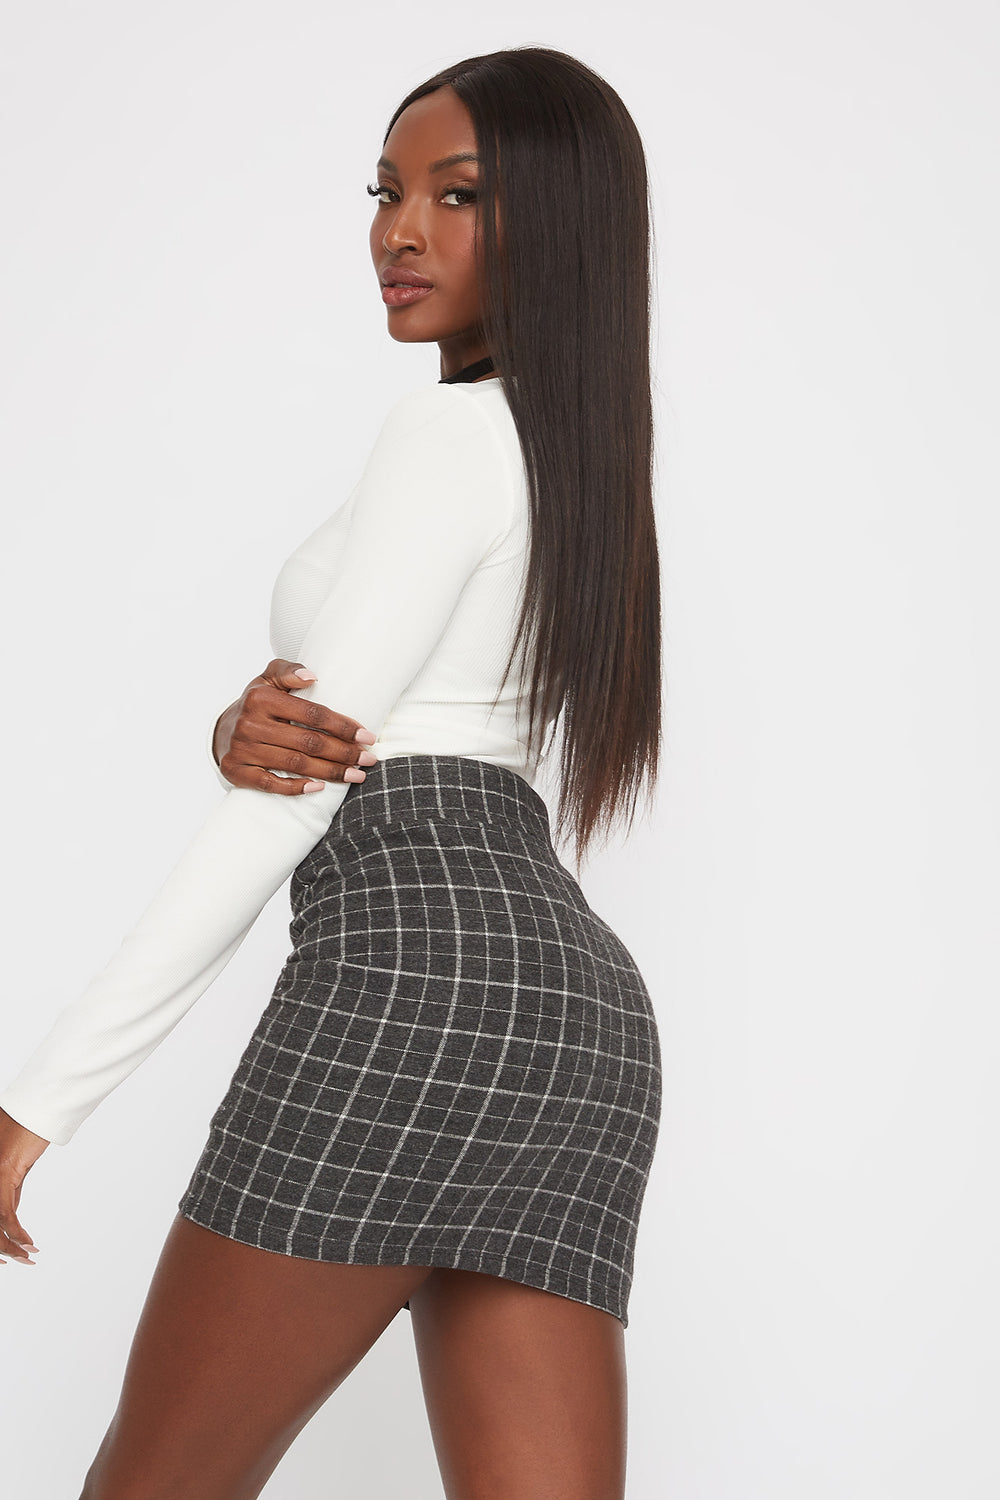 Patterned Mini Skirt Black With White